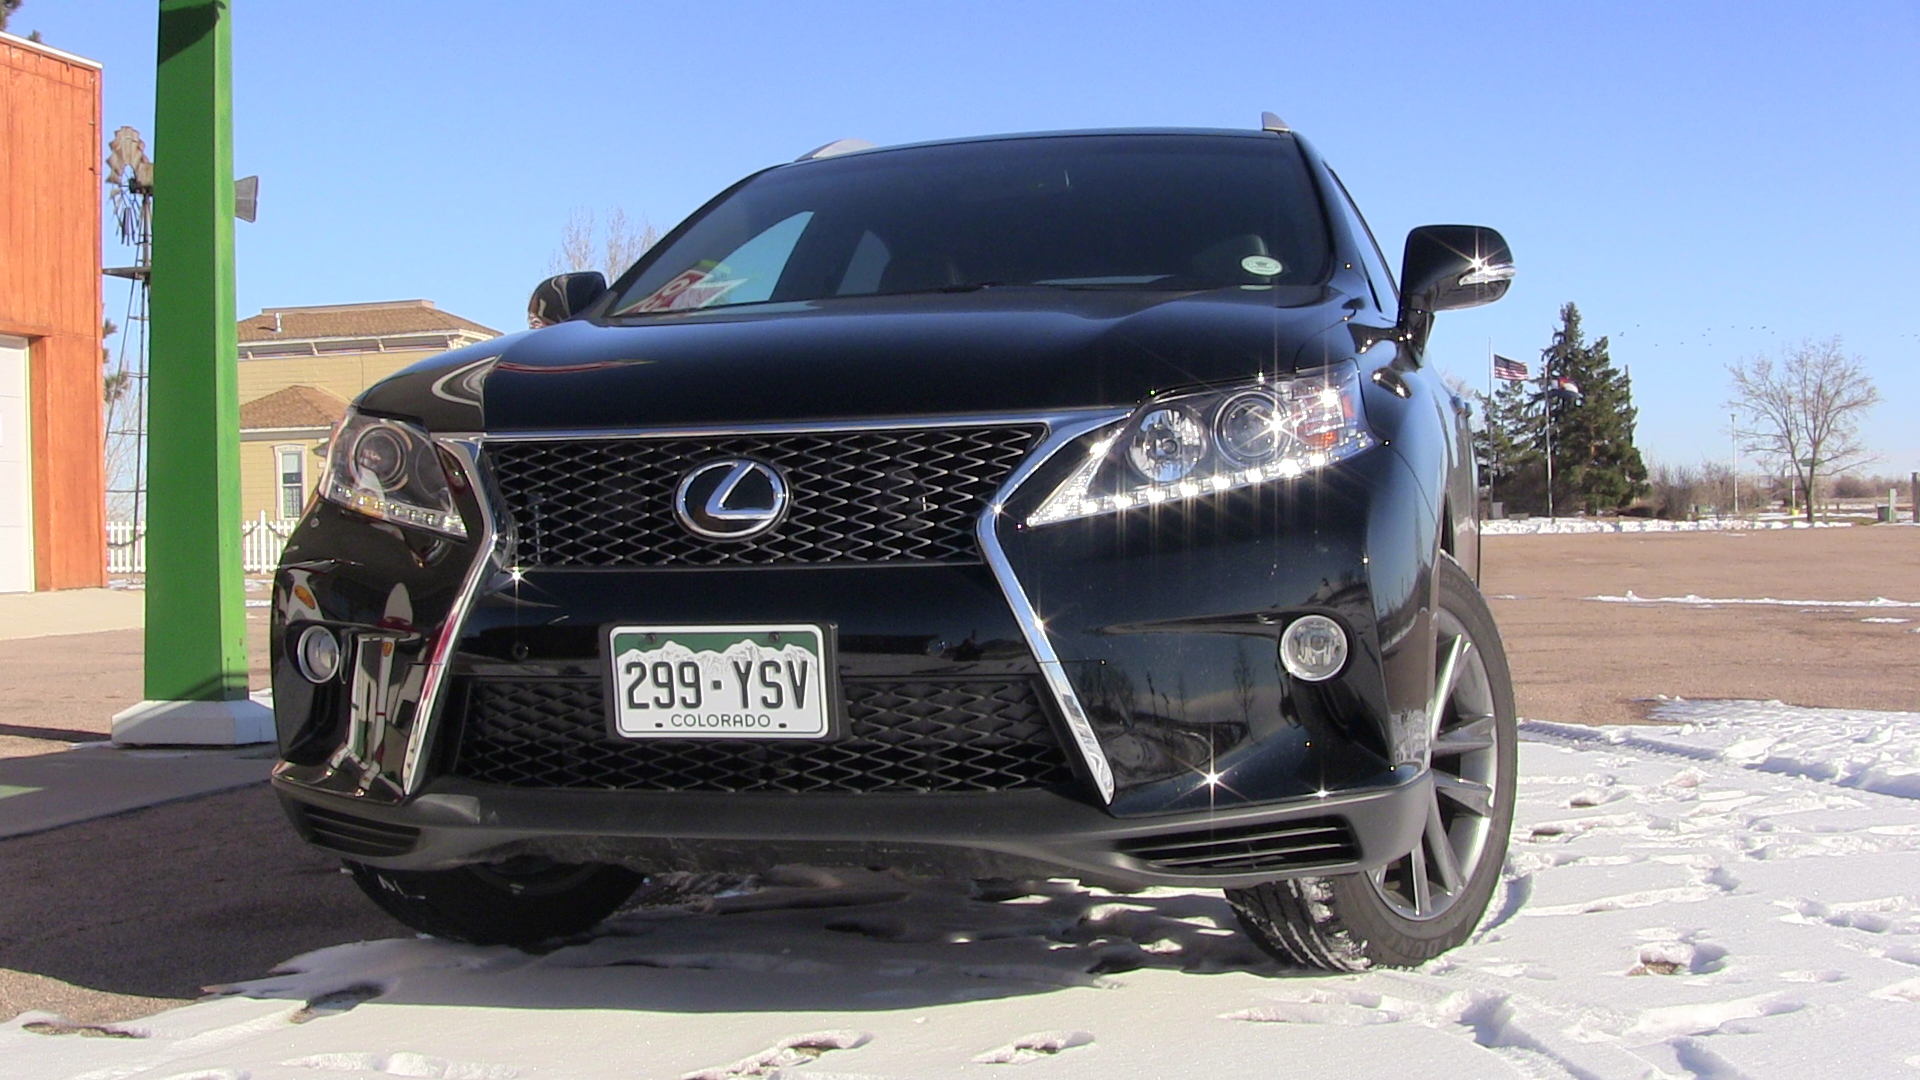 Review 2013 Lexus RX350 F Sport What does the F Sport stand for